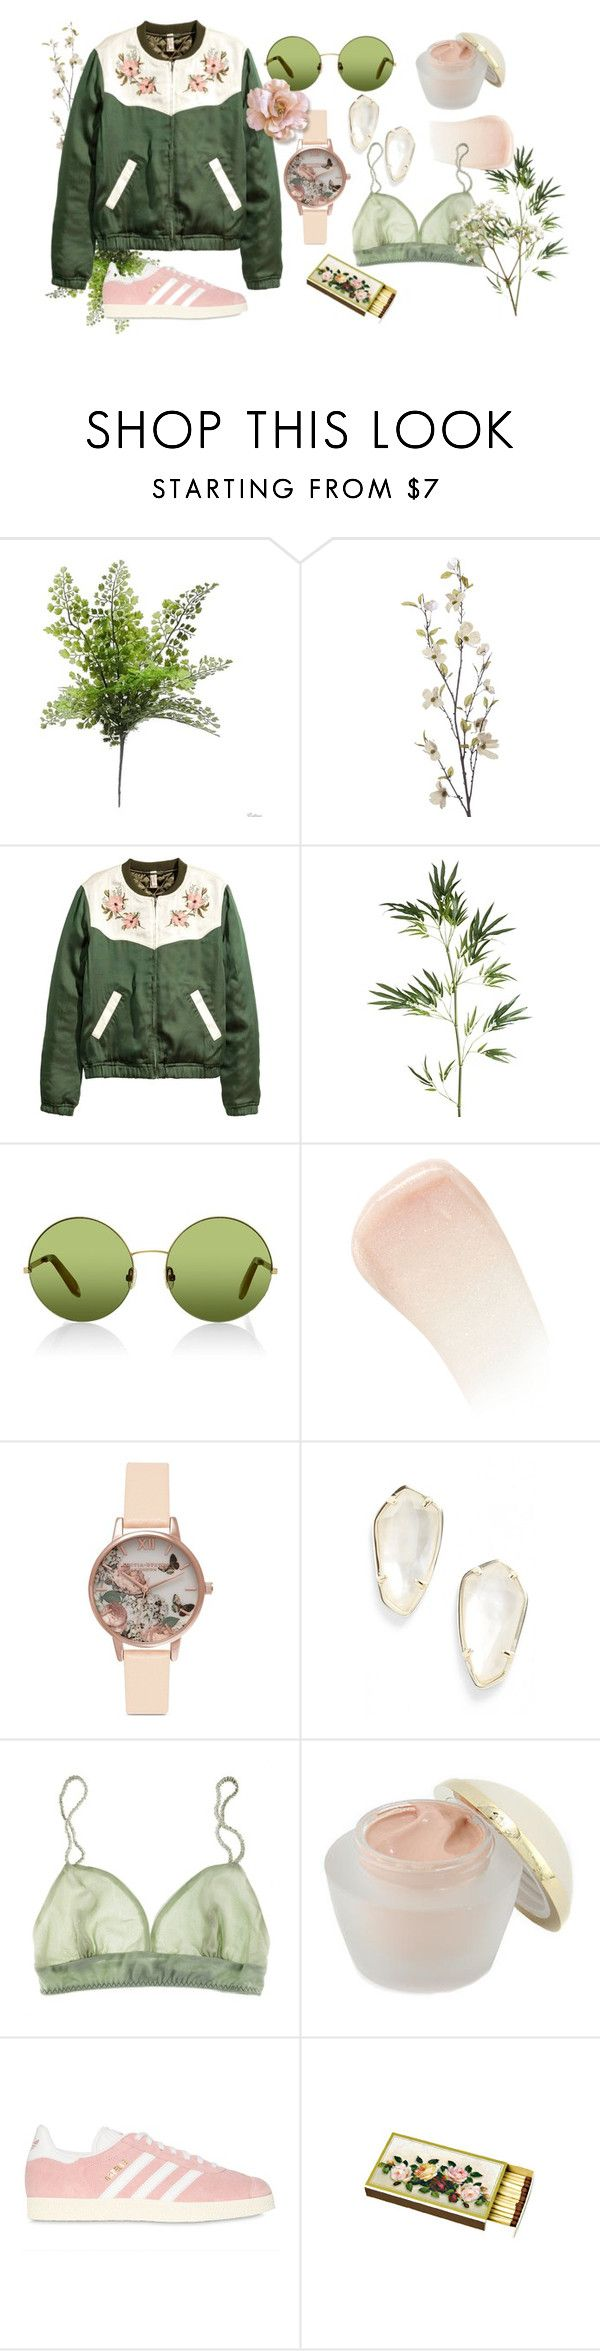 """Floral"" by ashenbones ❤ liked on Polyvore featuring Pier 1 Imports, Victoria, Victoria Beckham, By Terry, Olivia Burton, Kendra Scott, La Fée Verte, Elizabeth Arden, adidas Originals, Chandelier and floral"